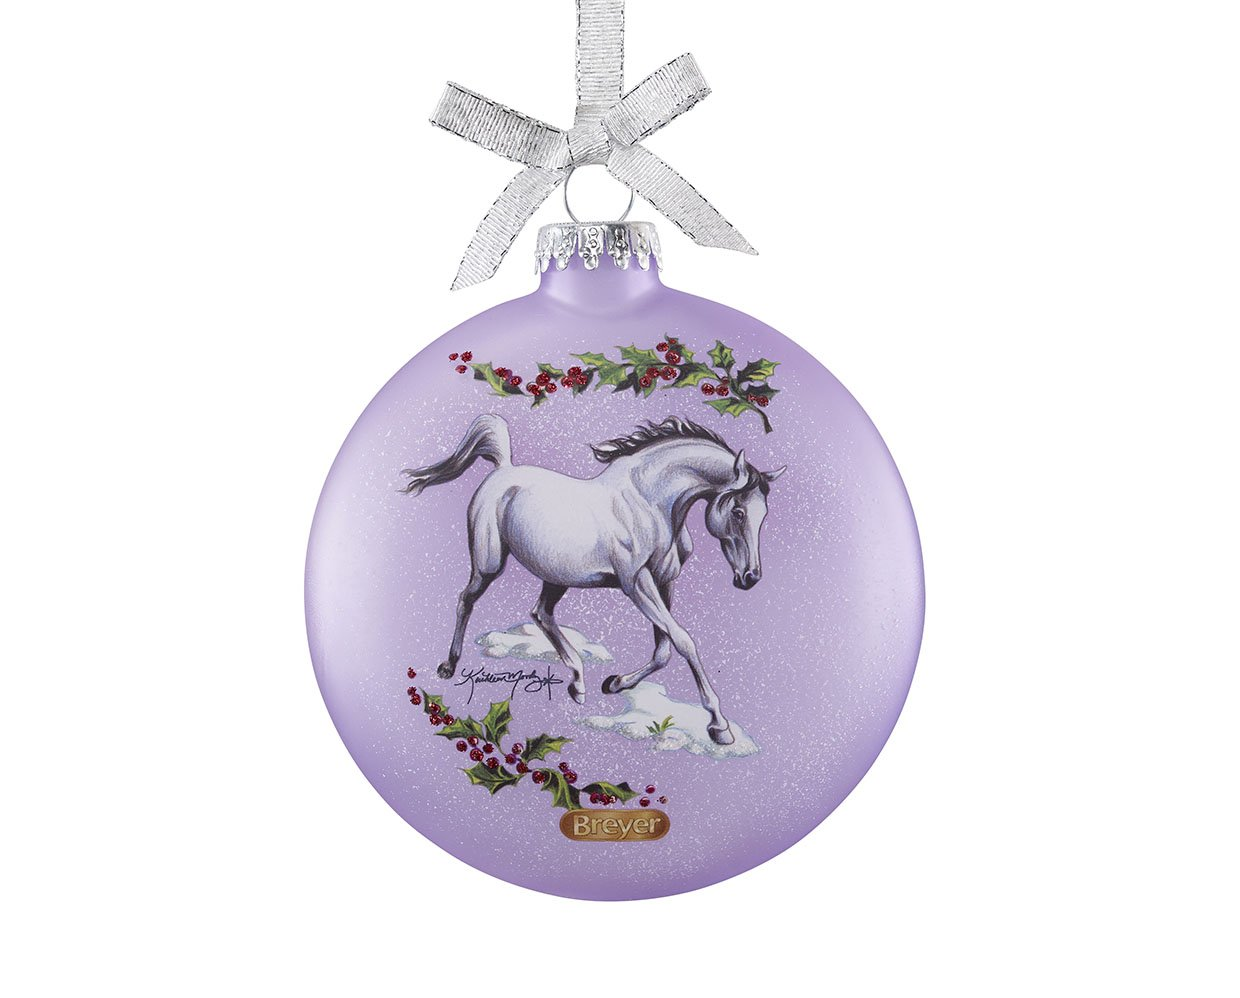 Breyer Holiday Collection #700822 2018 Artist Signature Glass Ornament - Arabian Horses - New Factory Sealed